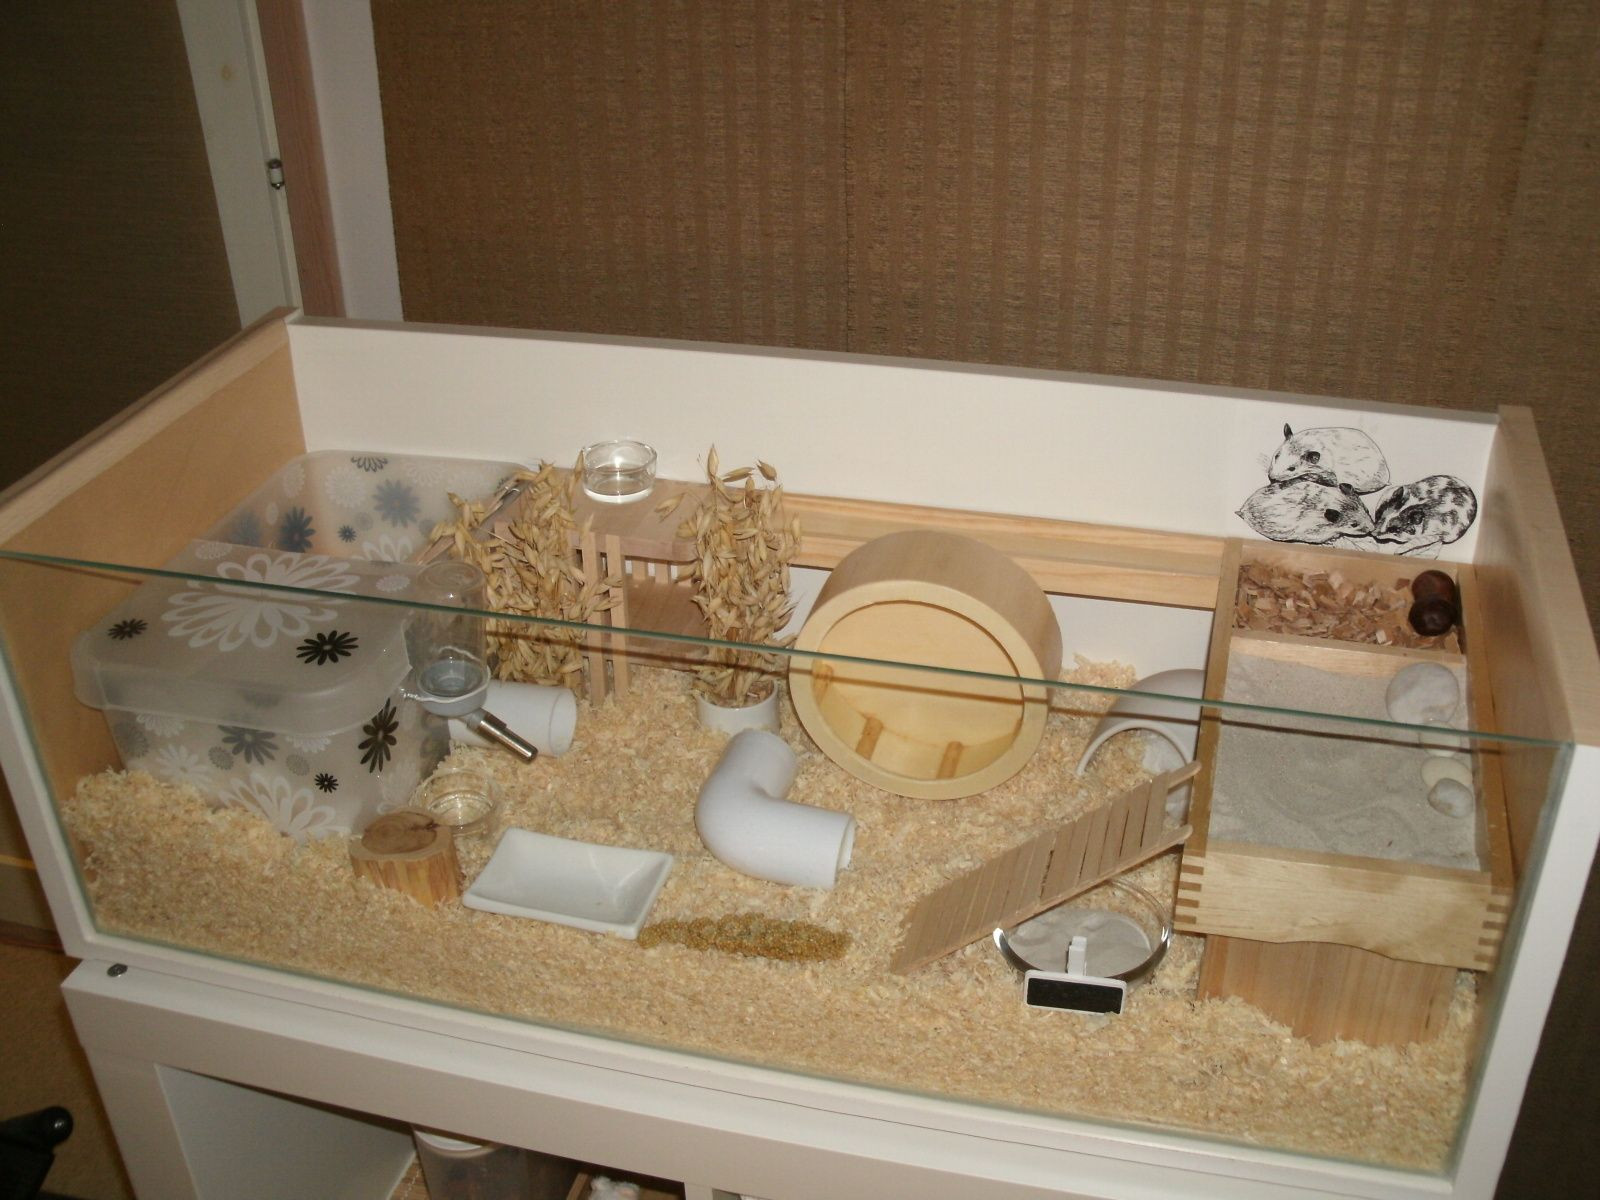 Best ideas about DIY Hamster Cage . Save or Pin Best 25 Hamster cages ideas on Pinterest Now.